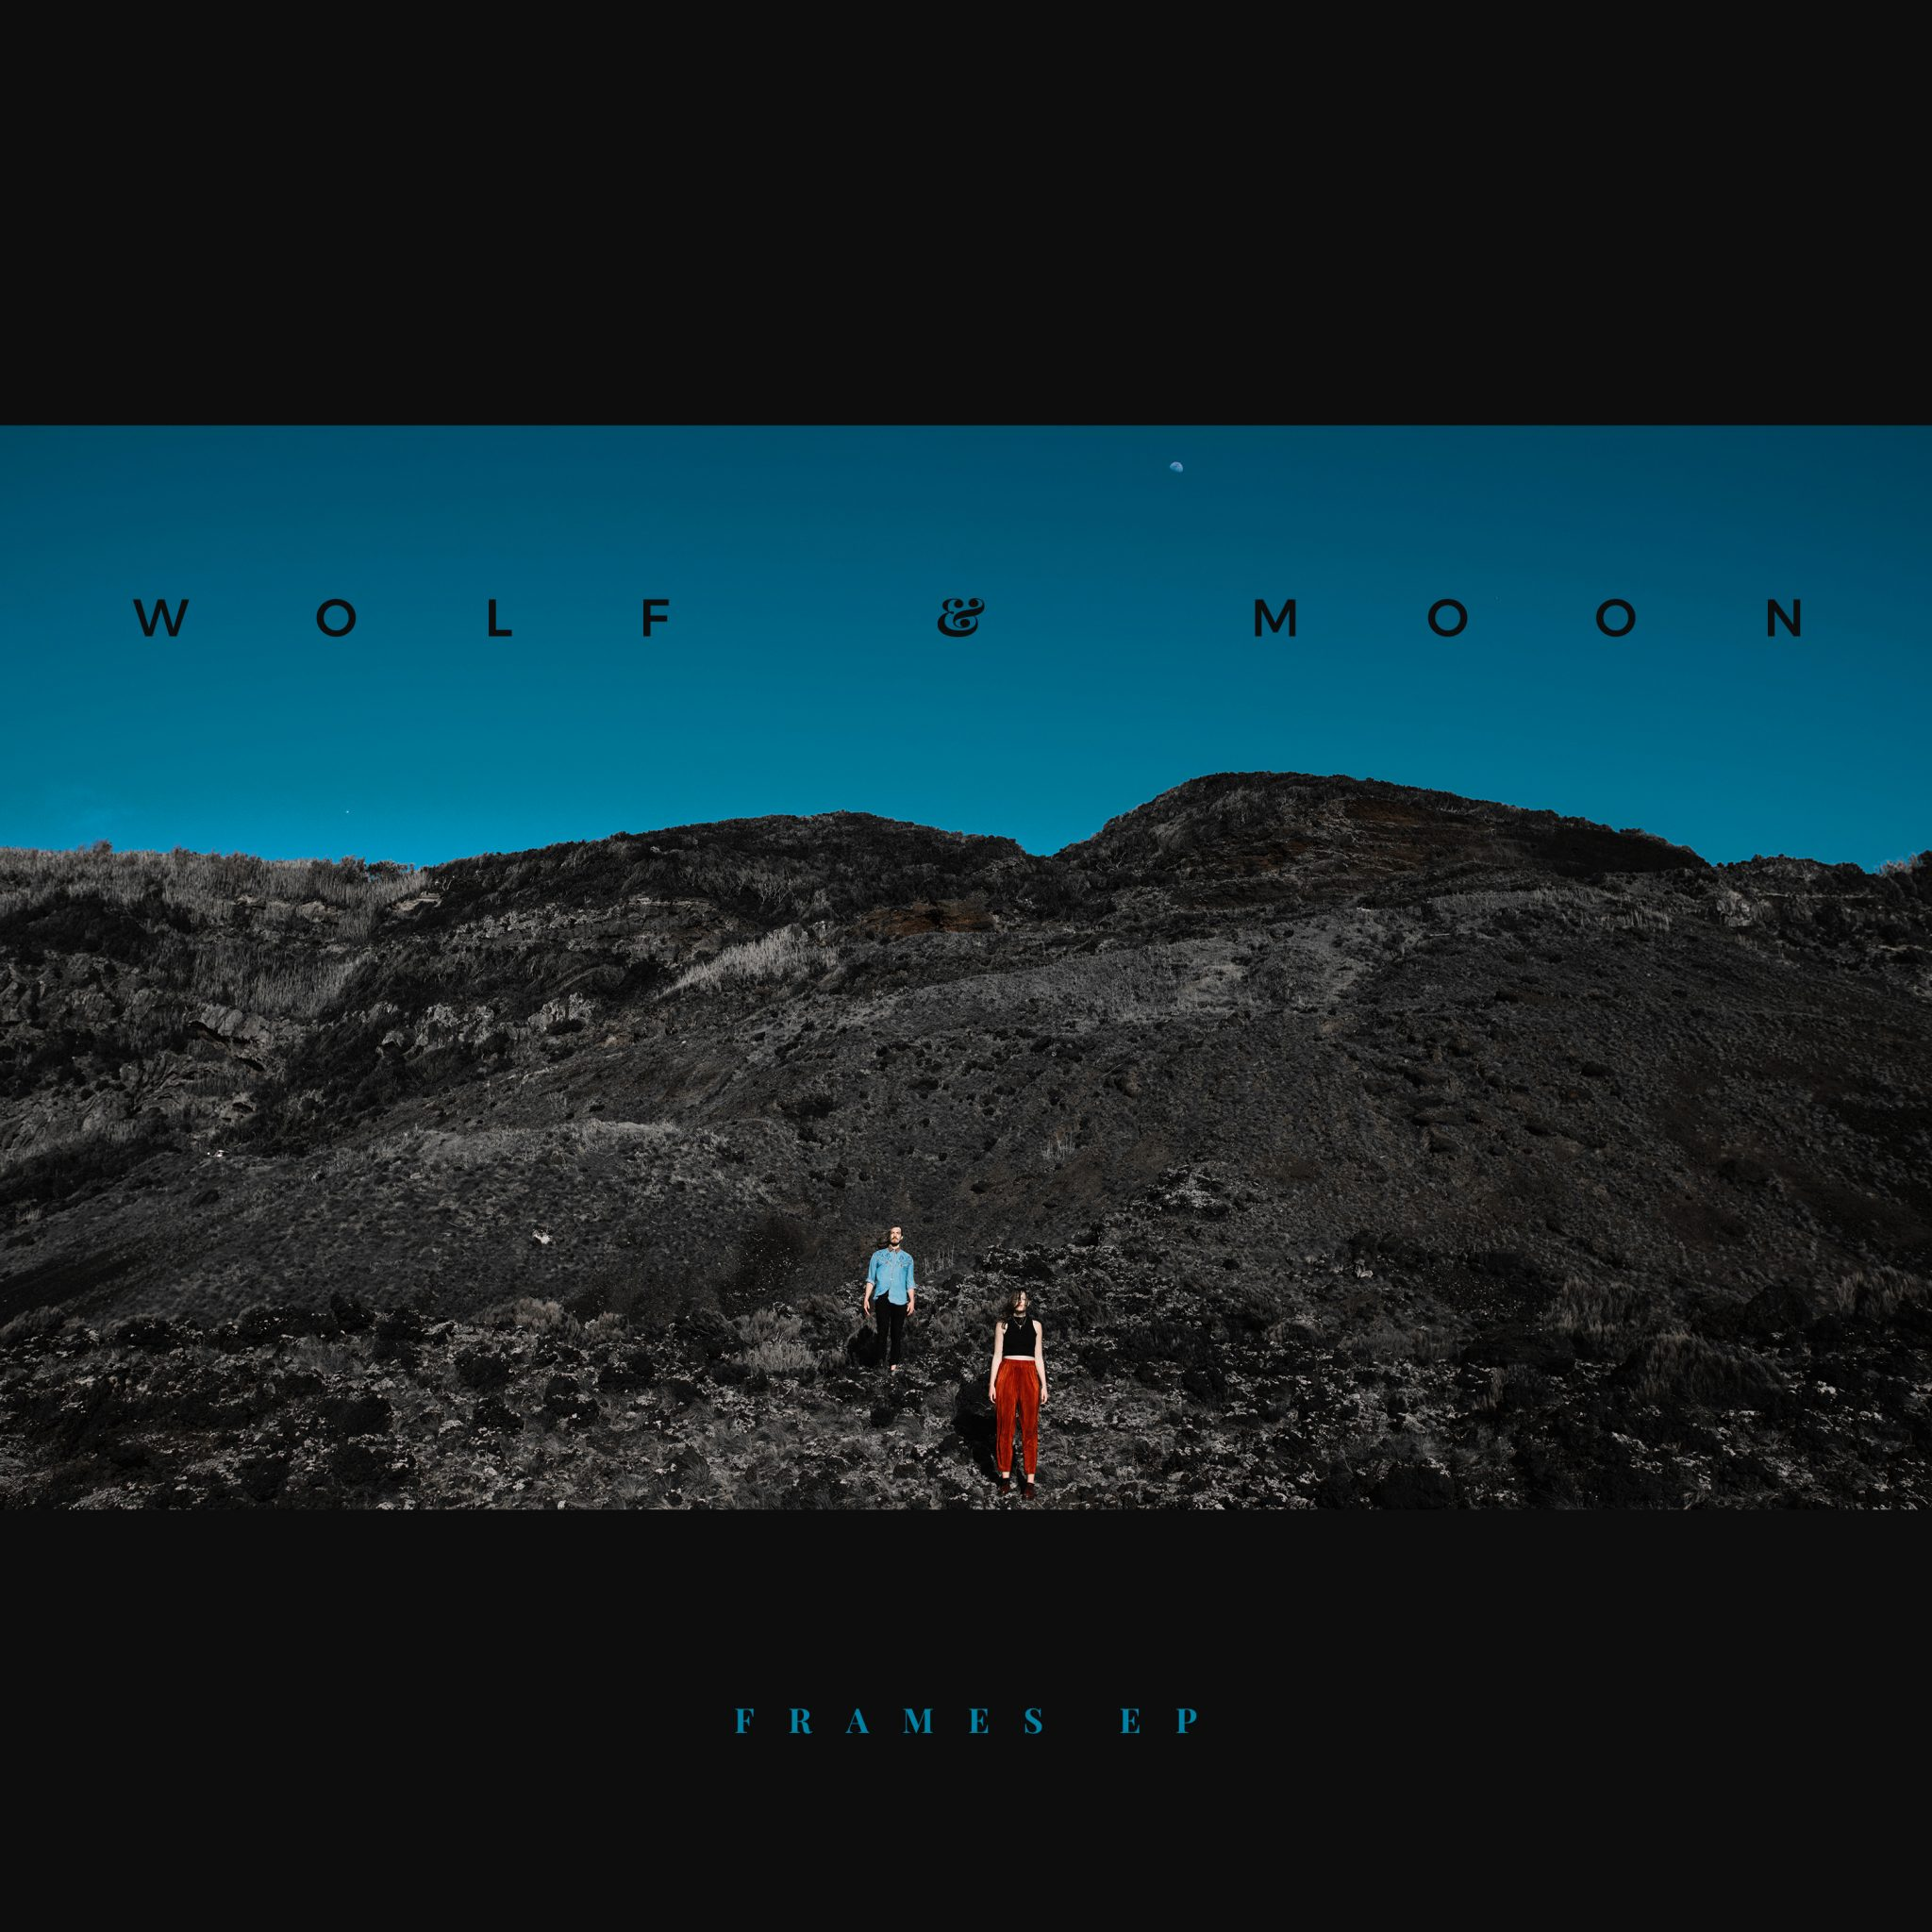 ep recommendation-frames ep-by-wolf and moon-Germany-indie music-new music-indie folk-music blog-indie blog-duo-wolf in a suit-wolfinasuit